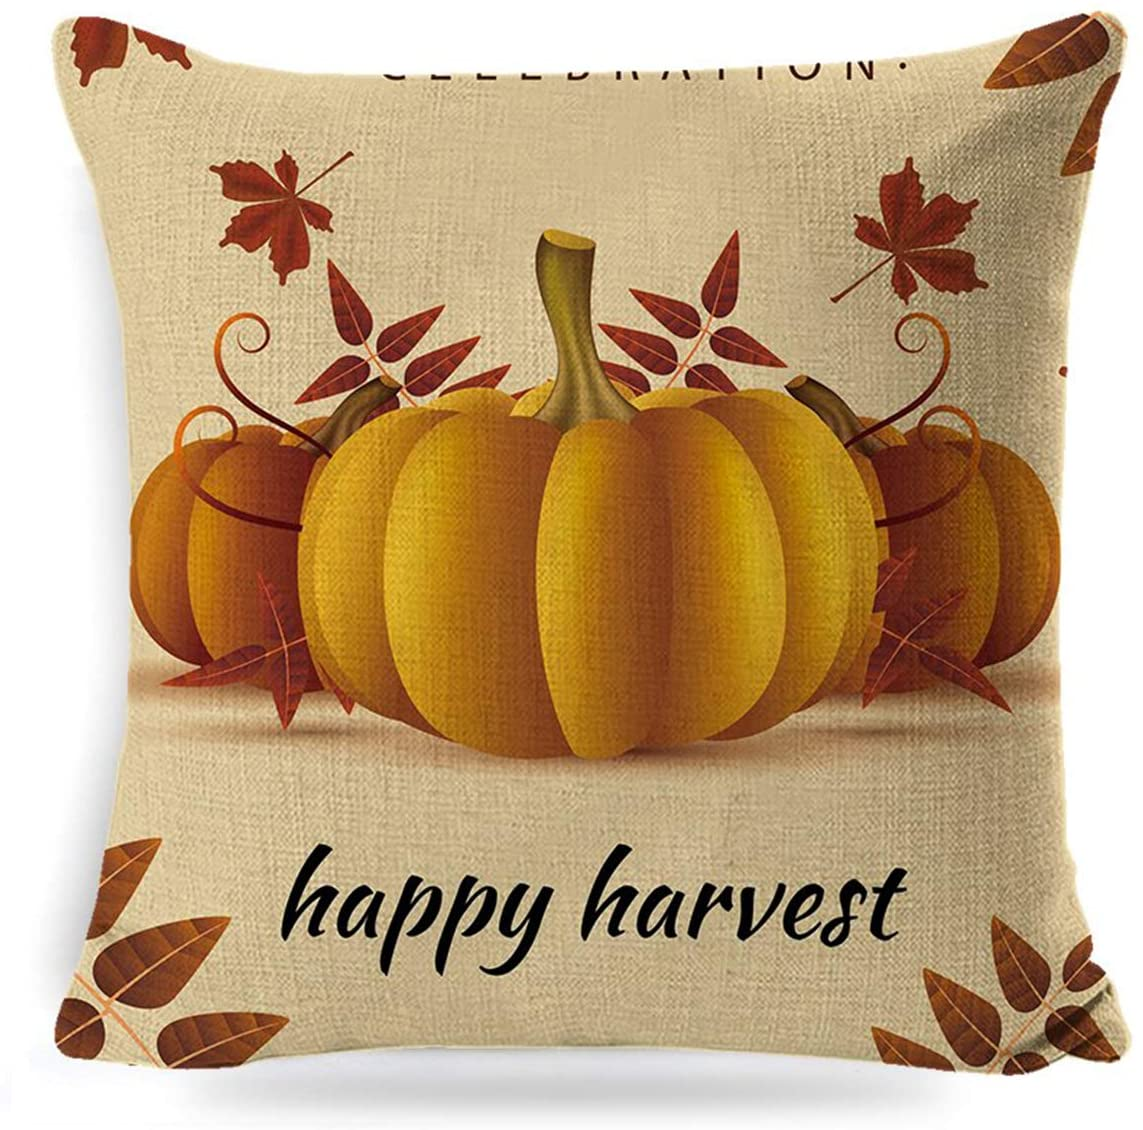 SASTYBALE 18x18 Fall Pillow Covers-Autumn Harvest Pumpkin Throw Pillows Thanksgiving Farmhouse Decorative Pillowcase Cotton Linen Cushion Case for Outdoor Decor